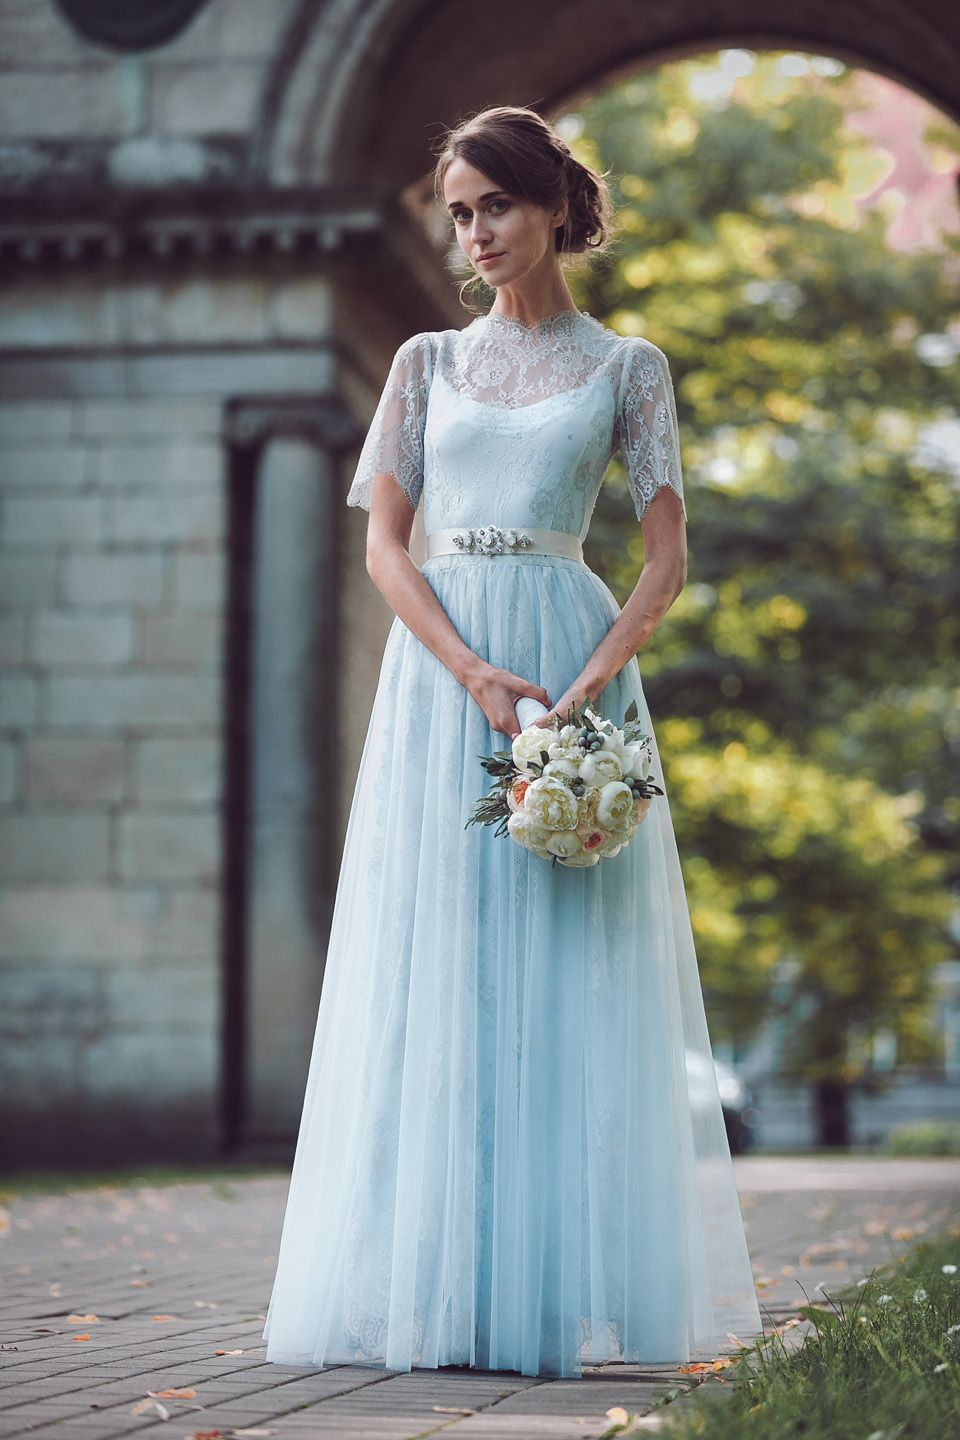 Rhapsody in Blue: Pale Blue Wedding Dresses by Katya Katya Shehurina ...